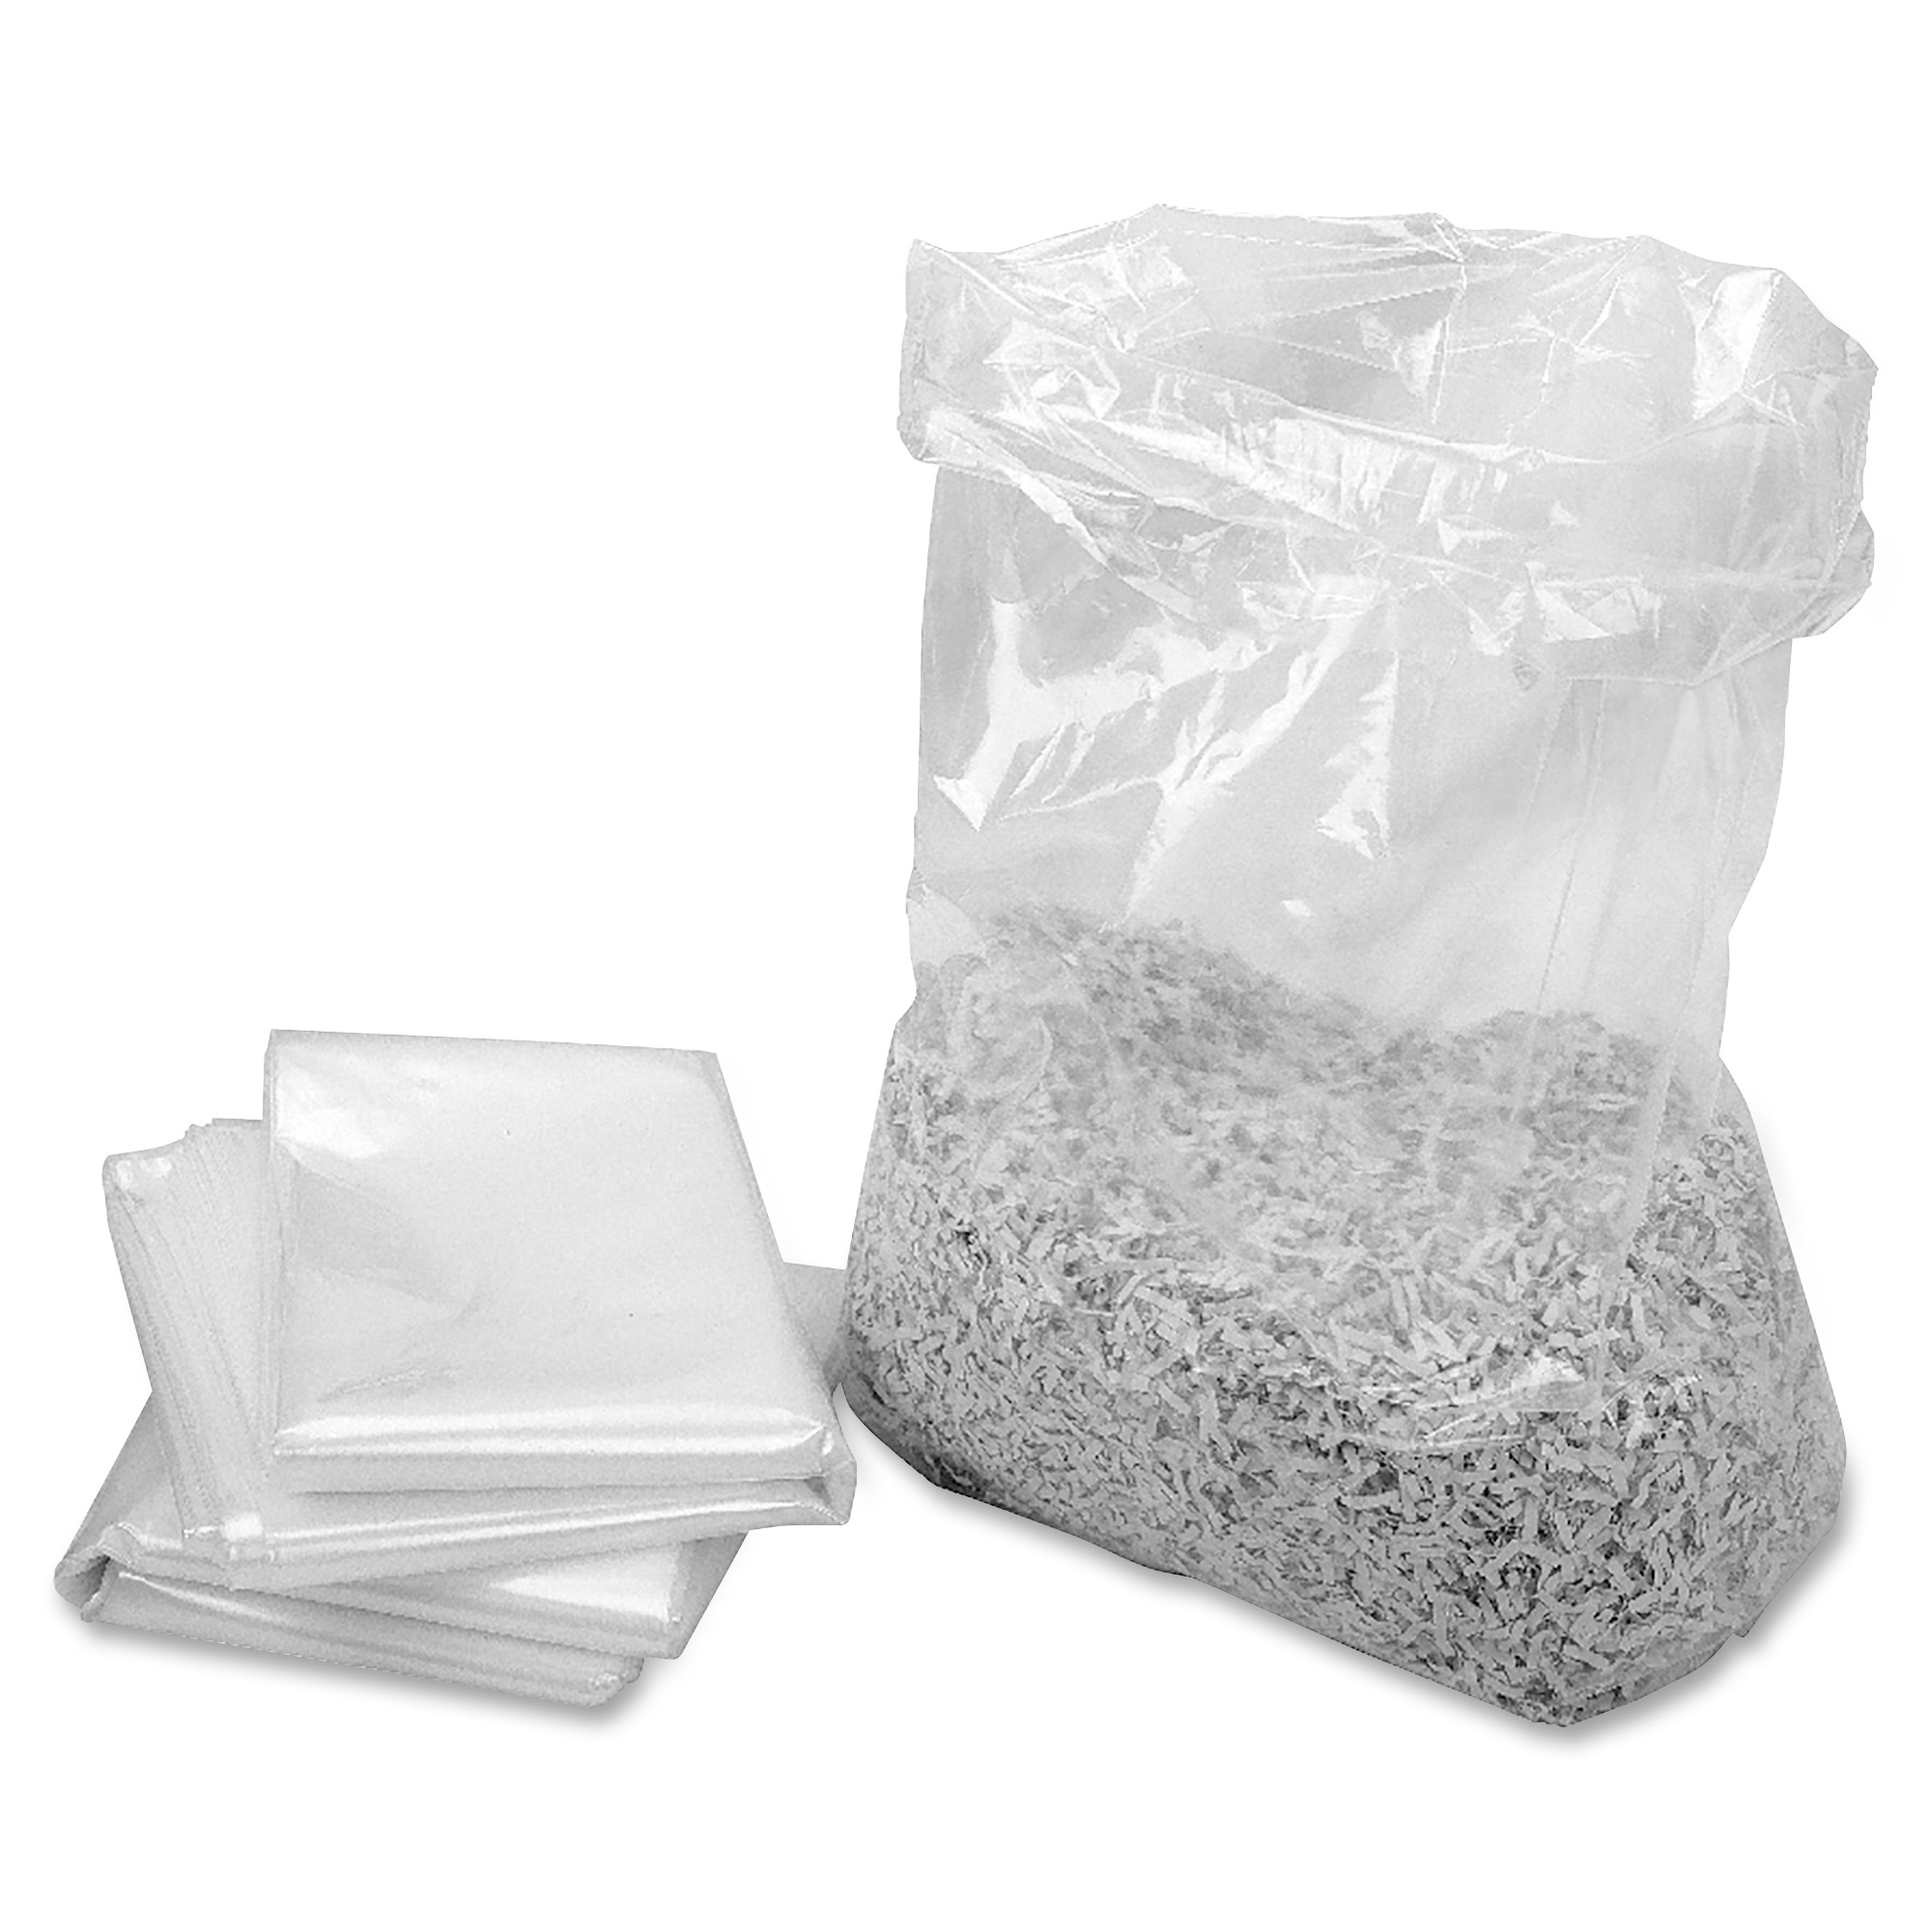 HSM, HSM2117, 58 Gallon Shredder Bags, 100 / Roll, Clear, 58 gal